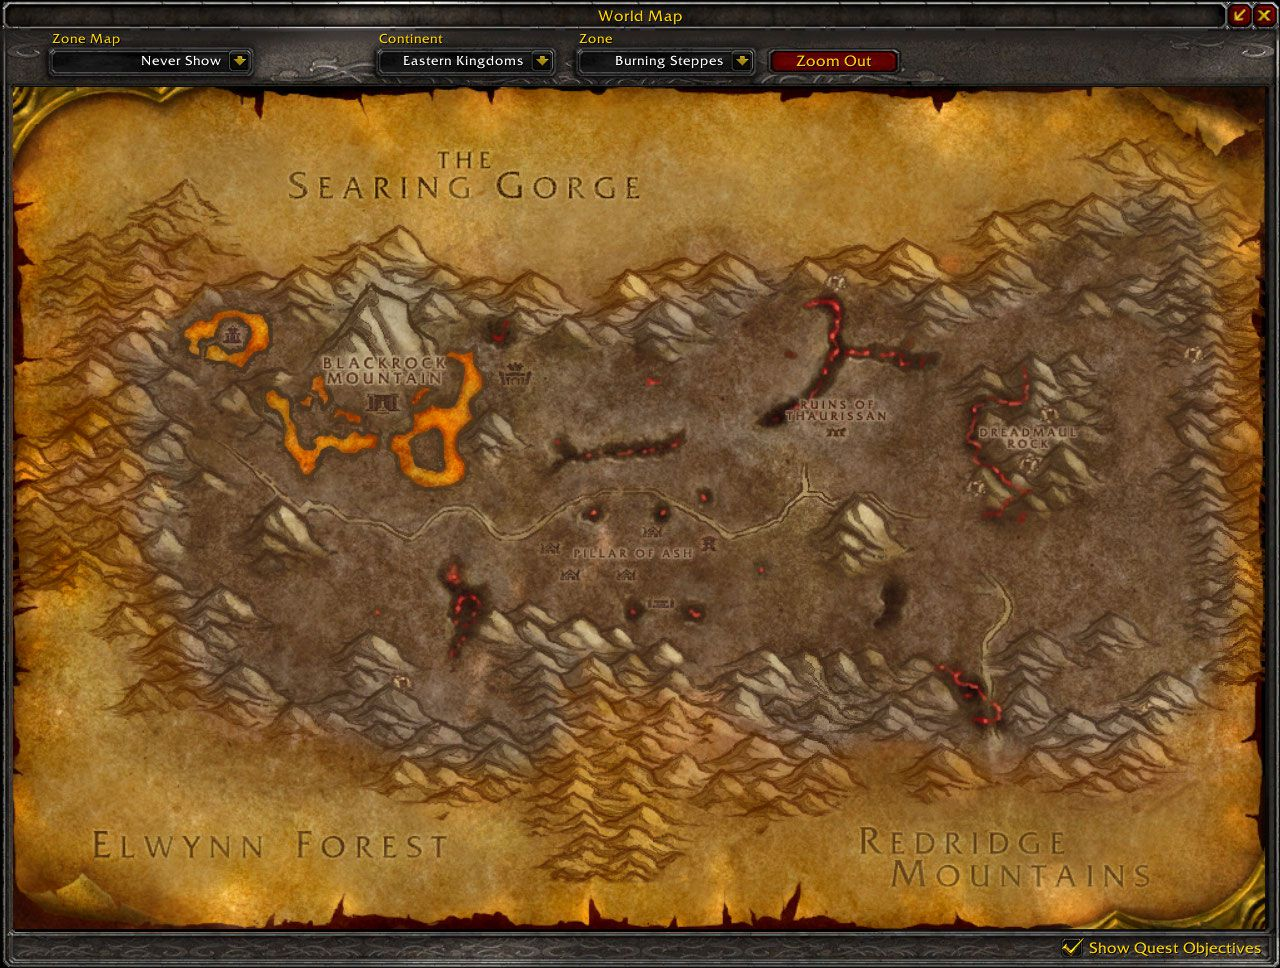 Burning Steppes map wow screenshot